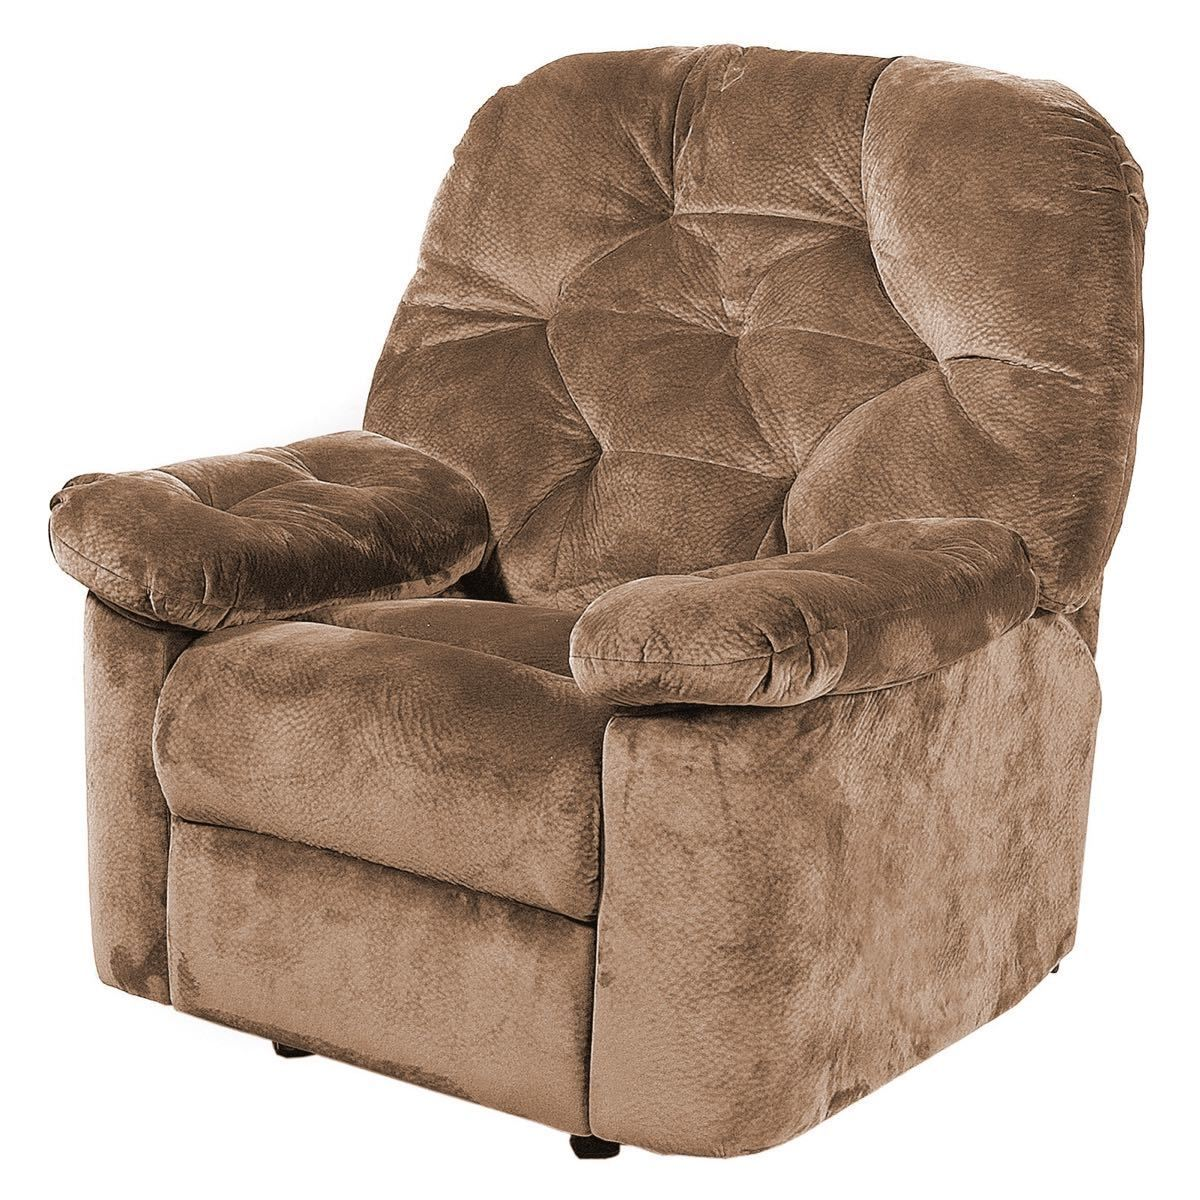 products schultz by height divided trim serta foundationdivided foundatn john adjustable item width motionplus v furniture foundation recliner chair at threshold king